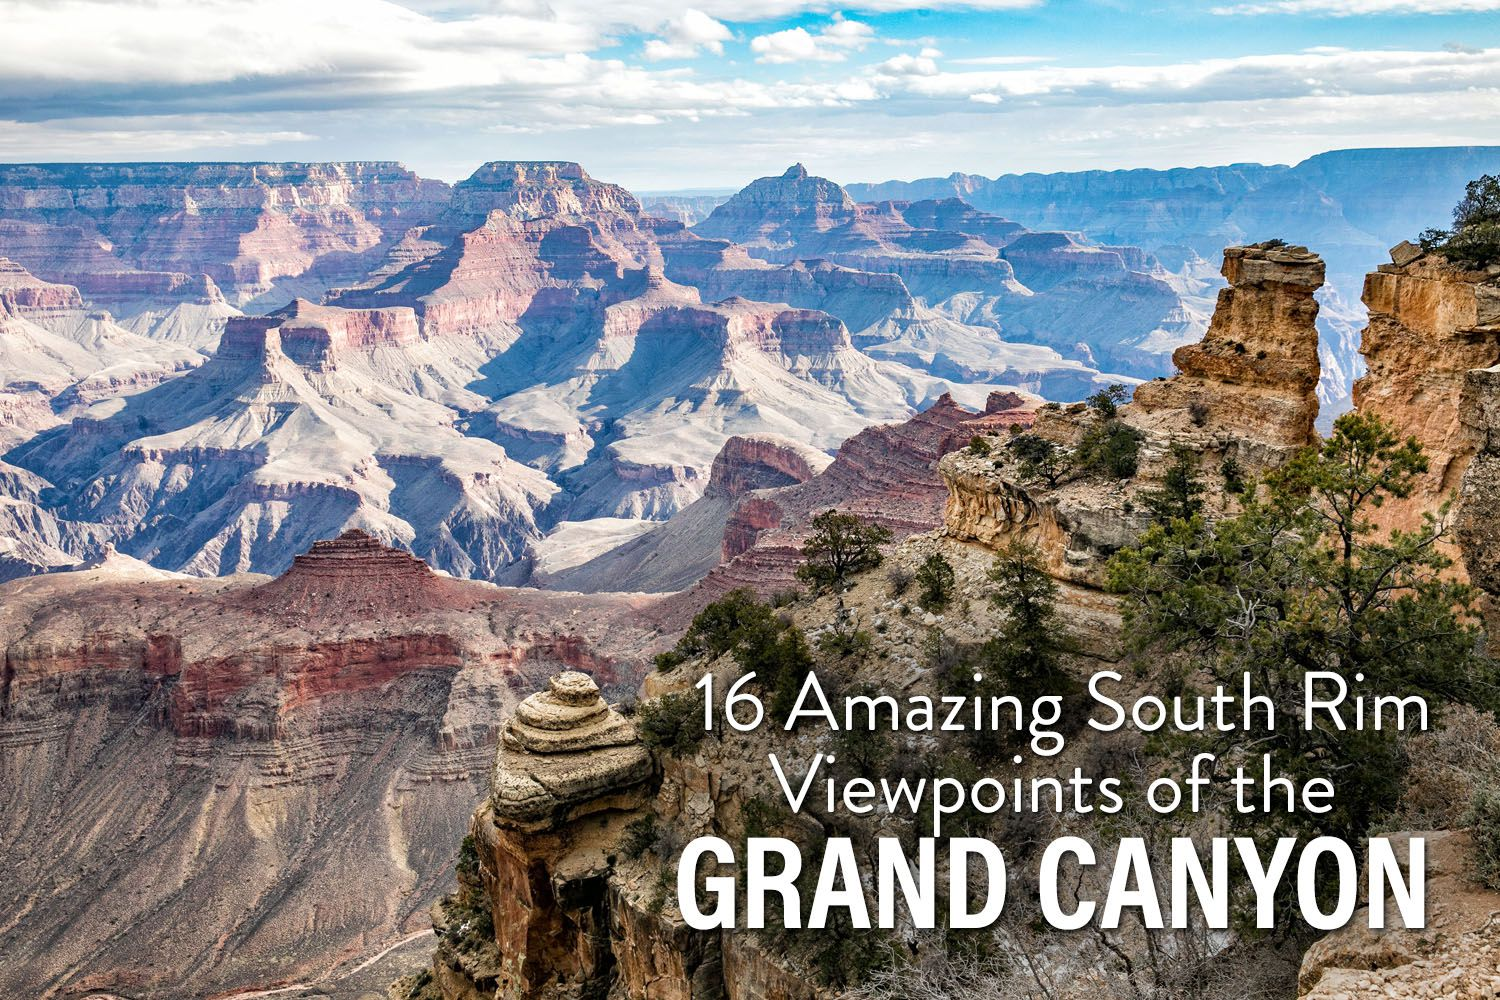 Grand Canyon Viewpoints